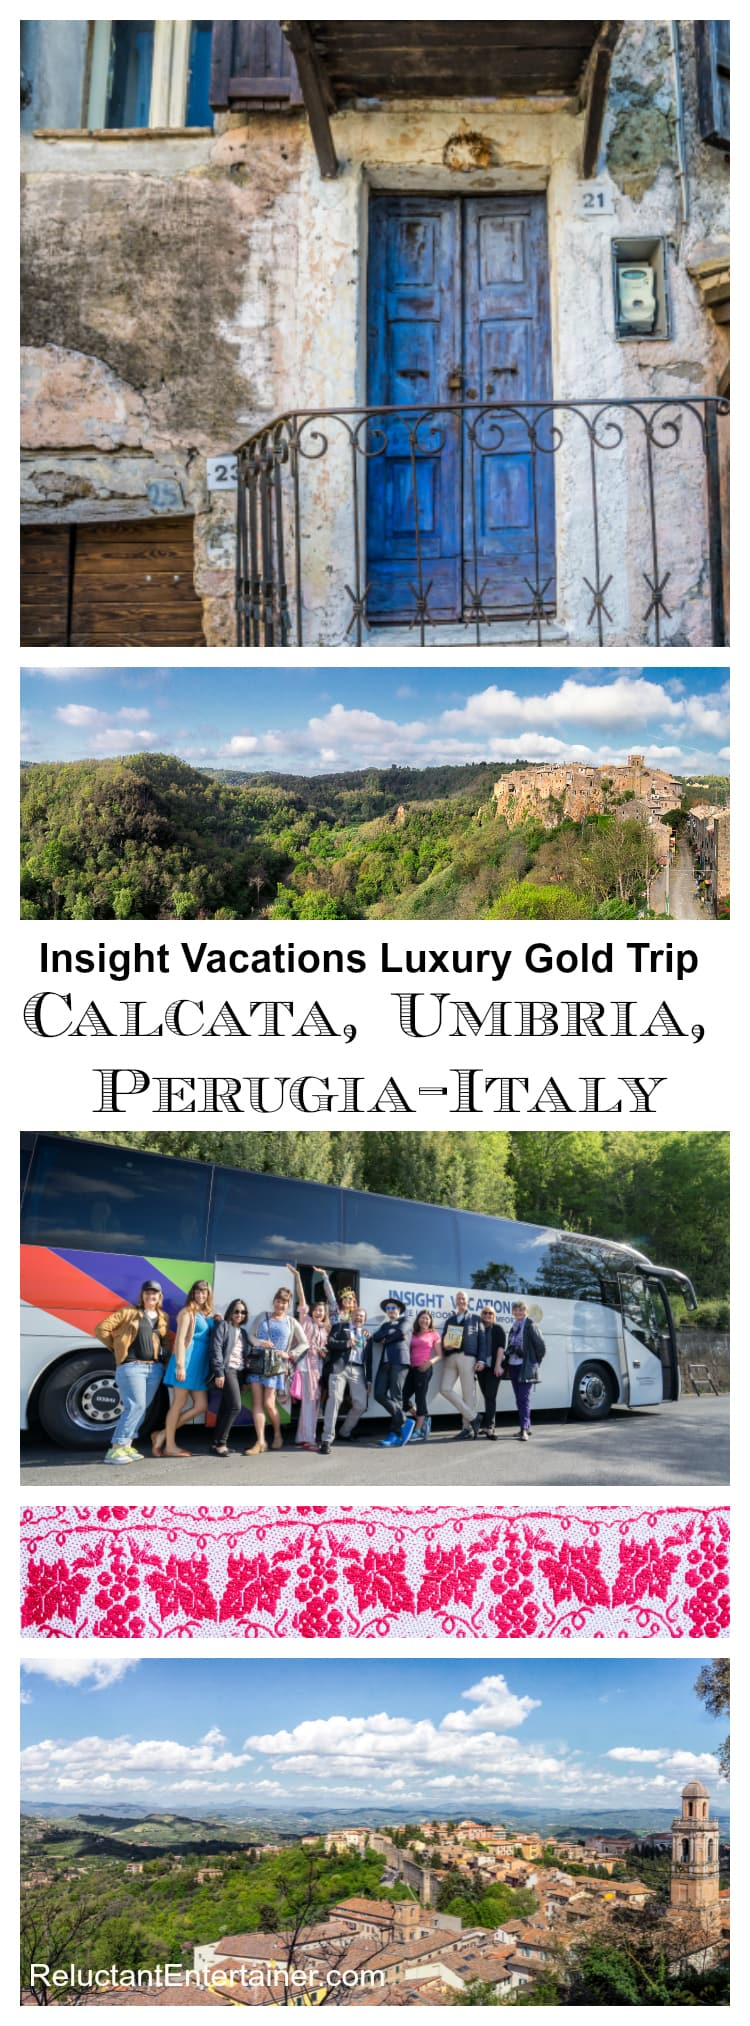 Insight Vacations Luxury Gold trip to Italy: Calcata, Umbria, Perugia | ReluctantEntertainer.com